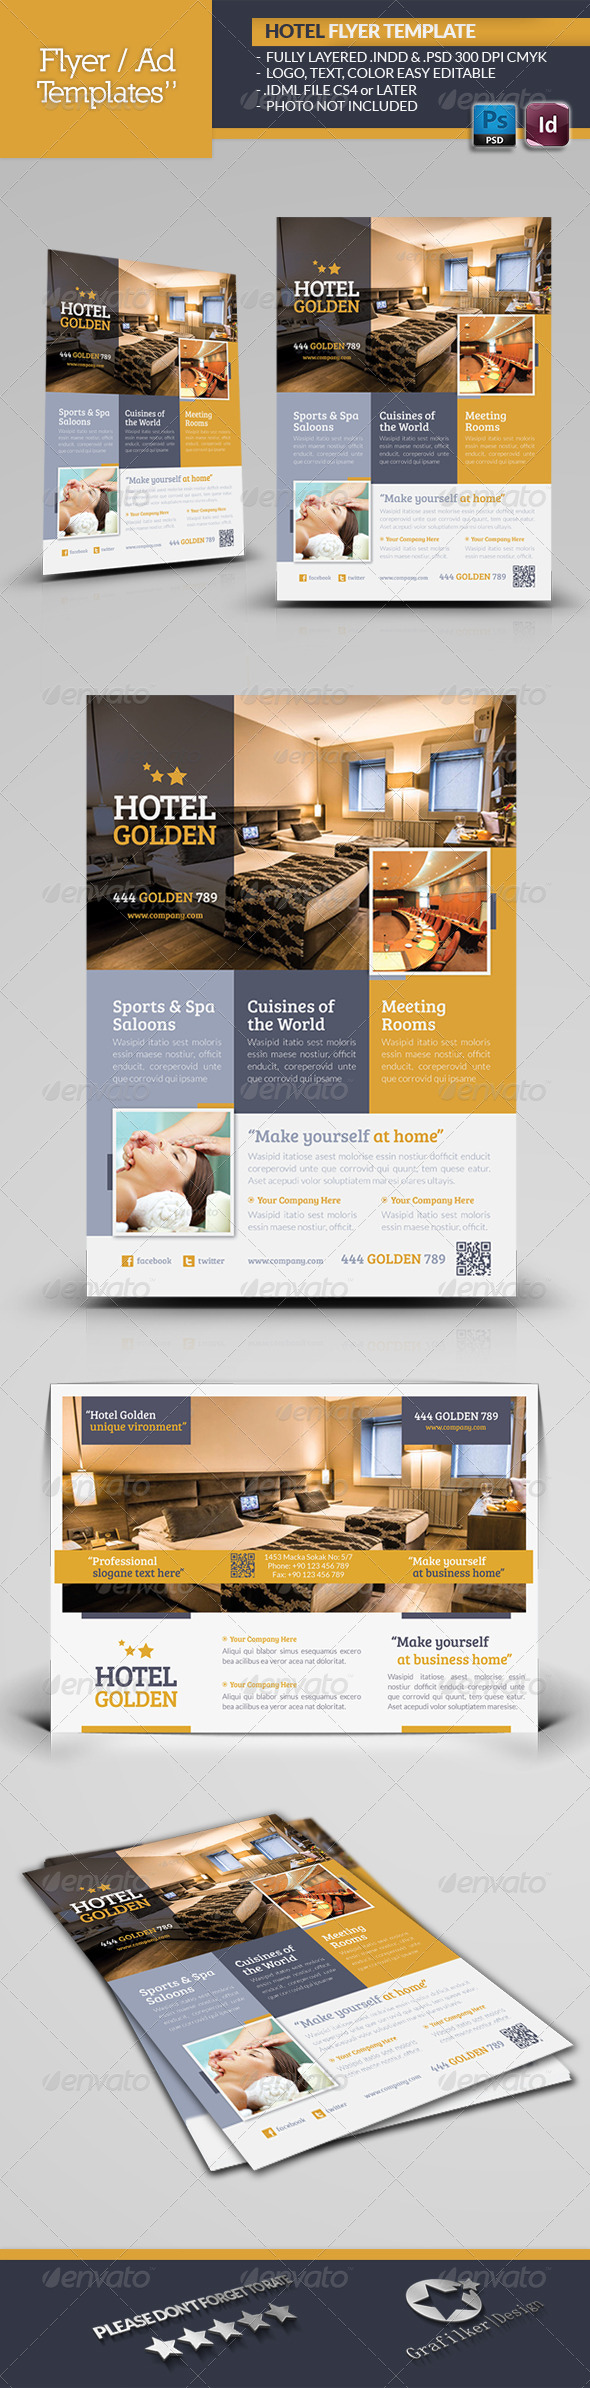 Hotel Golden Flyer Template - Corporate Flyers